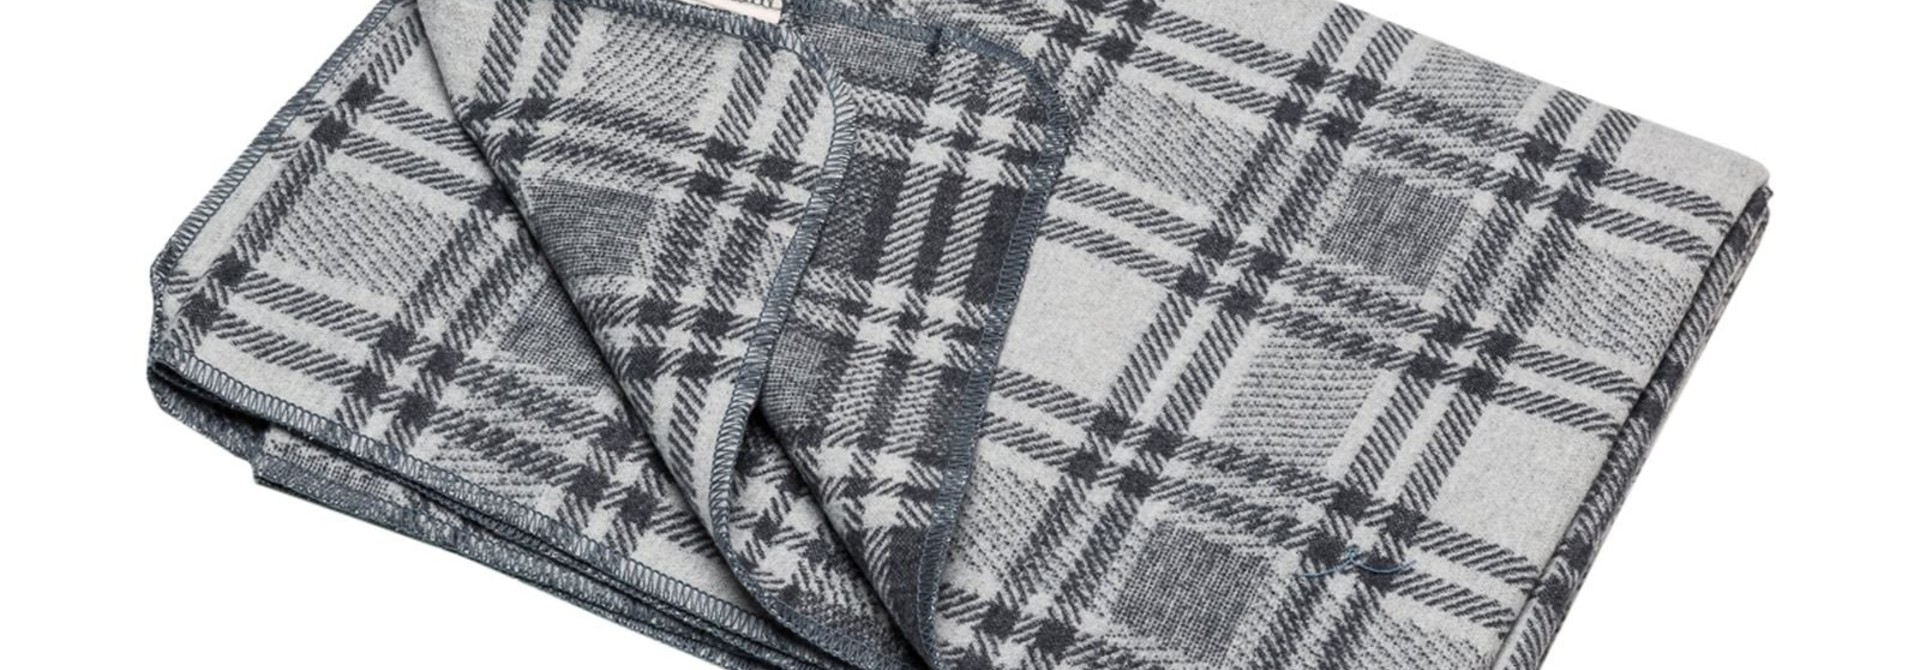 Blanket - Checkered - Charcoal